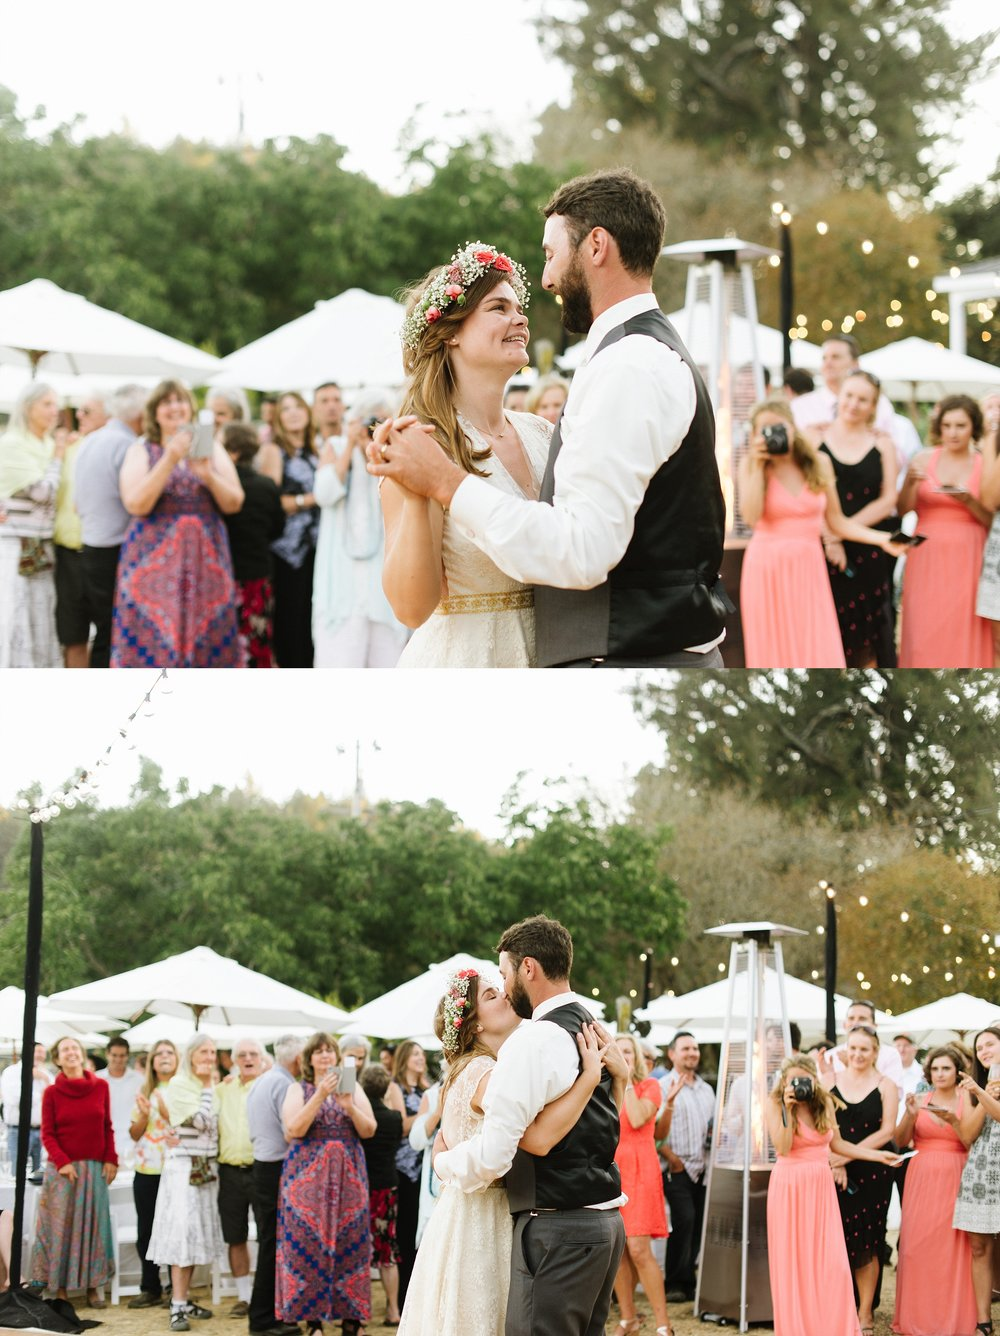 fairfax_ranch_wedding_chelsea_dier_photography_0047.jpg